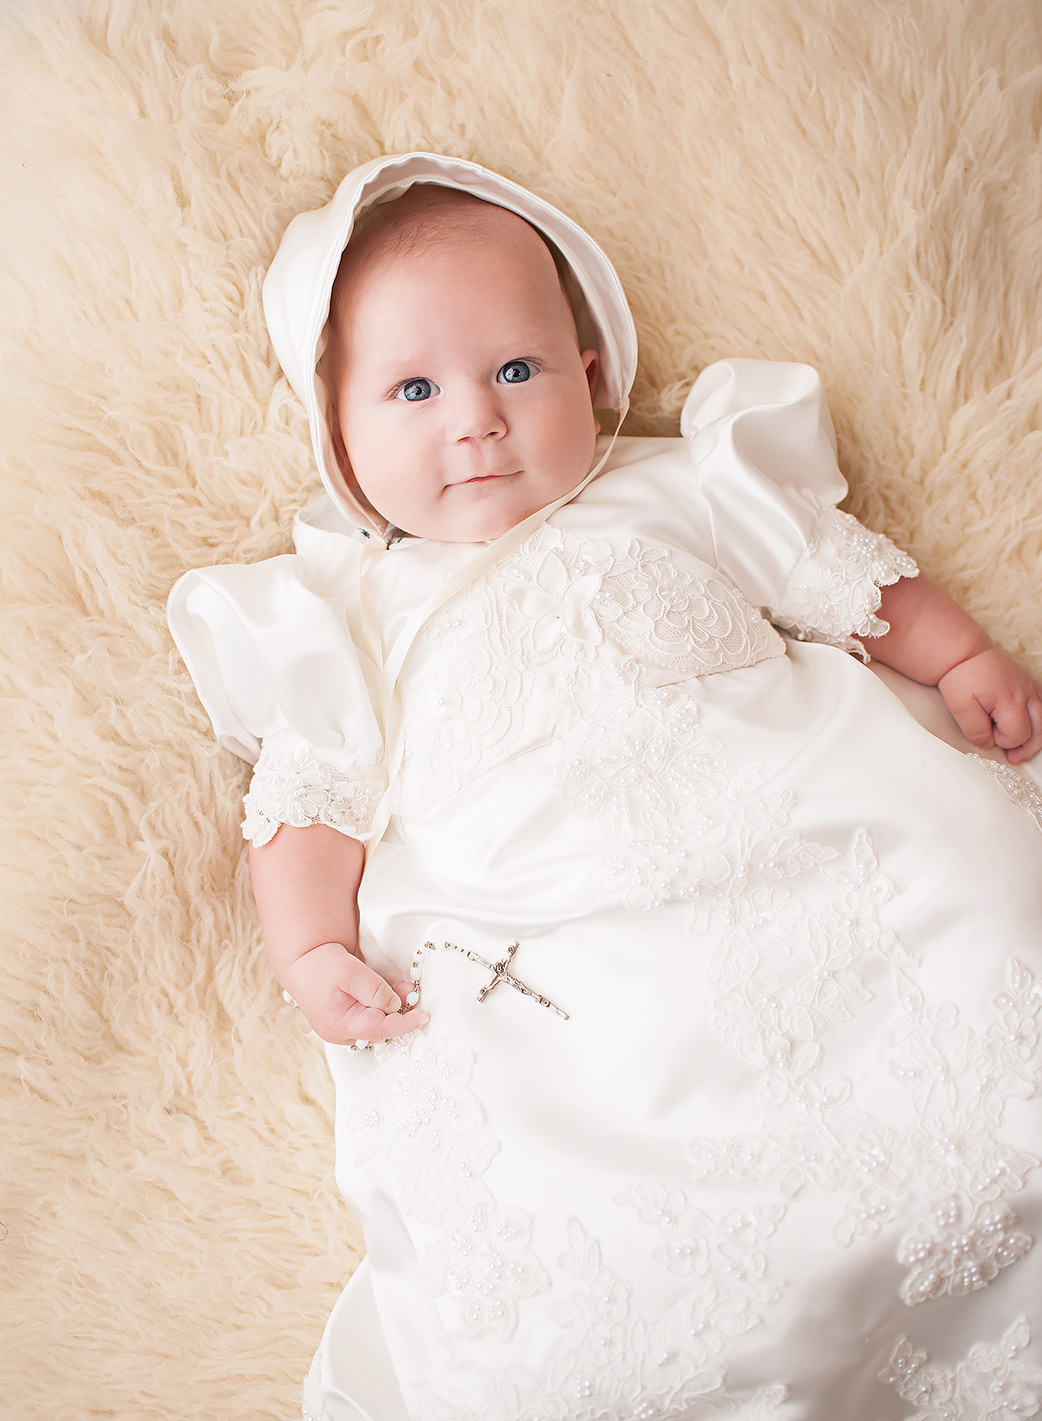 baby boy in baptism gown with rosary